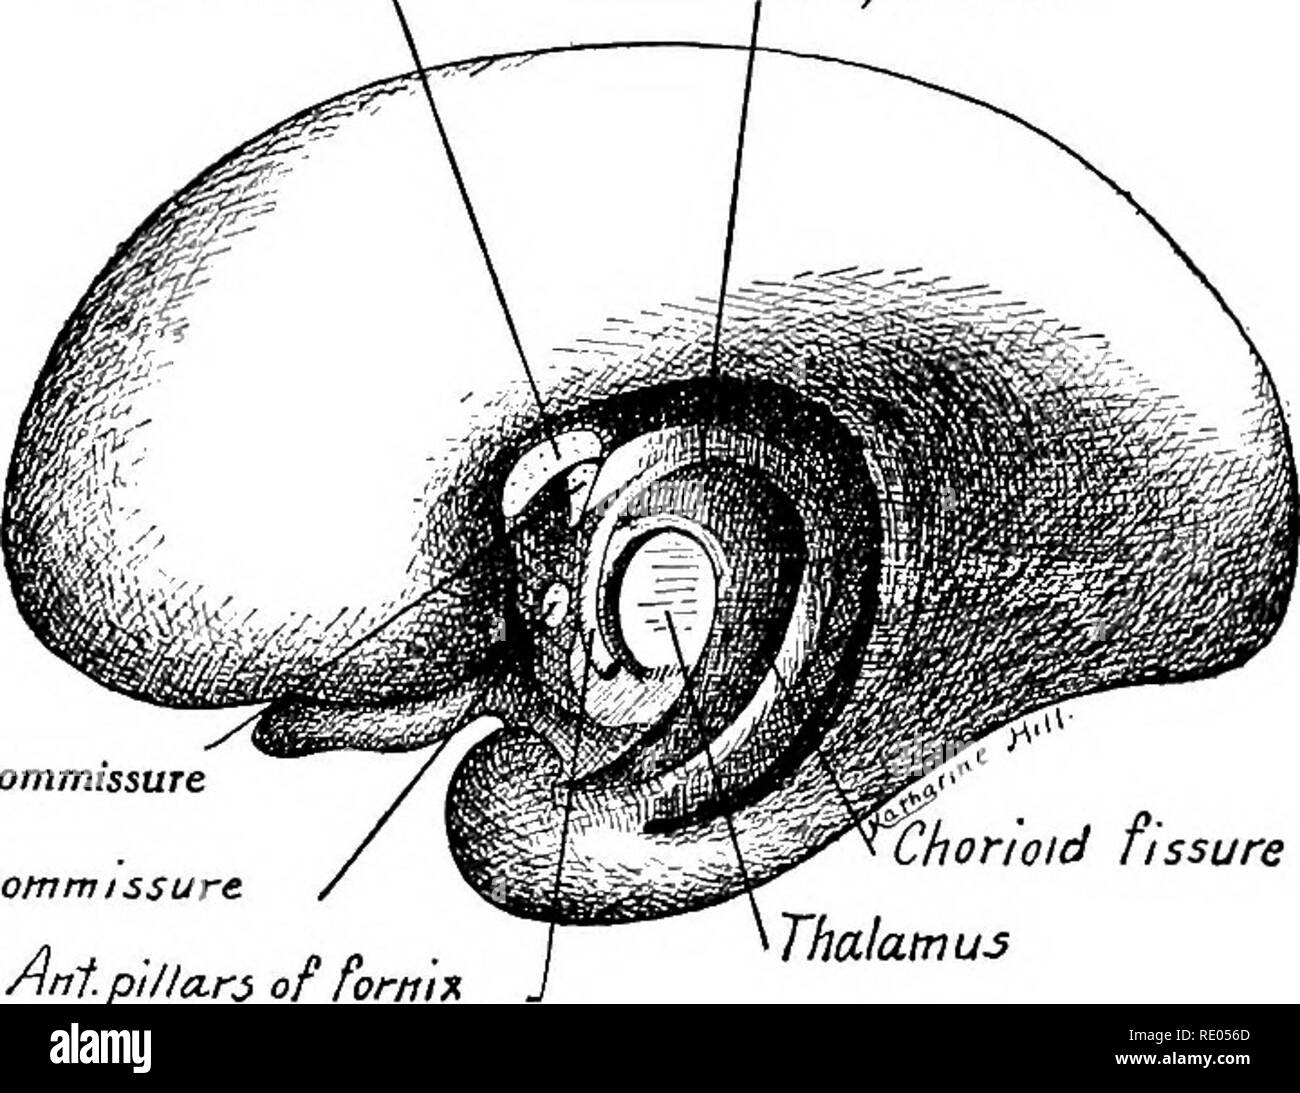 . A laboratory manual and text-book of embryology. Embryology. THE BRAIN 345 rhinencephalon. In this region fibers crossing the midline form the hippocampal commissure. Other fibers, as the anterior pillars of the fornix, curve ventrally and end in the mammillary body of the hypothalamus. The commissure of the hippocampus, originally cranial in position, is carried caudalward with the caudal extension of the corpus callosum (Fig. 333 B). Corpus callosum Body of fornix. Hippocampal commissure Anterior commissure Antpillars of fornix orwid fissure Thalamus Body of fornix Septum pellucidum Hippoc - Stock Image